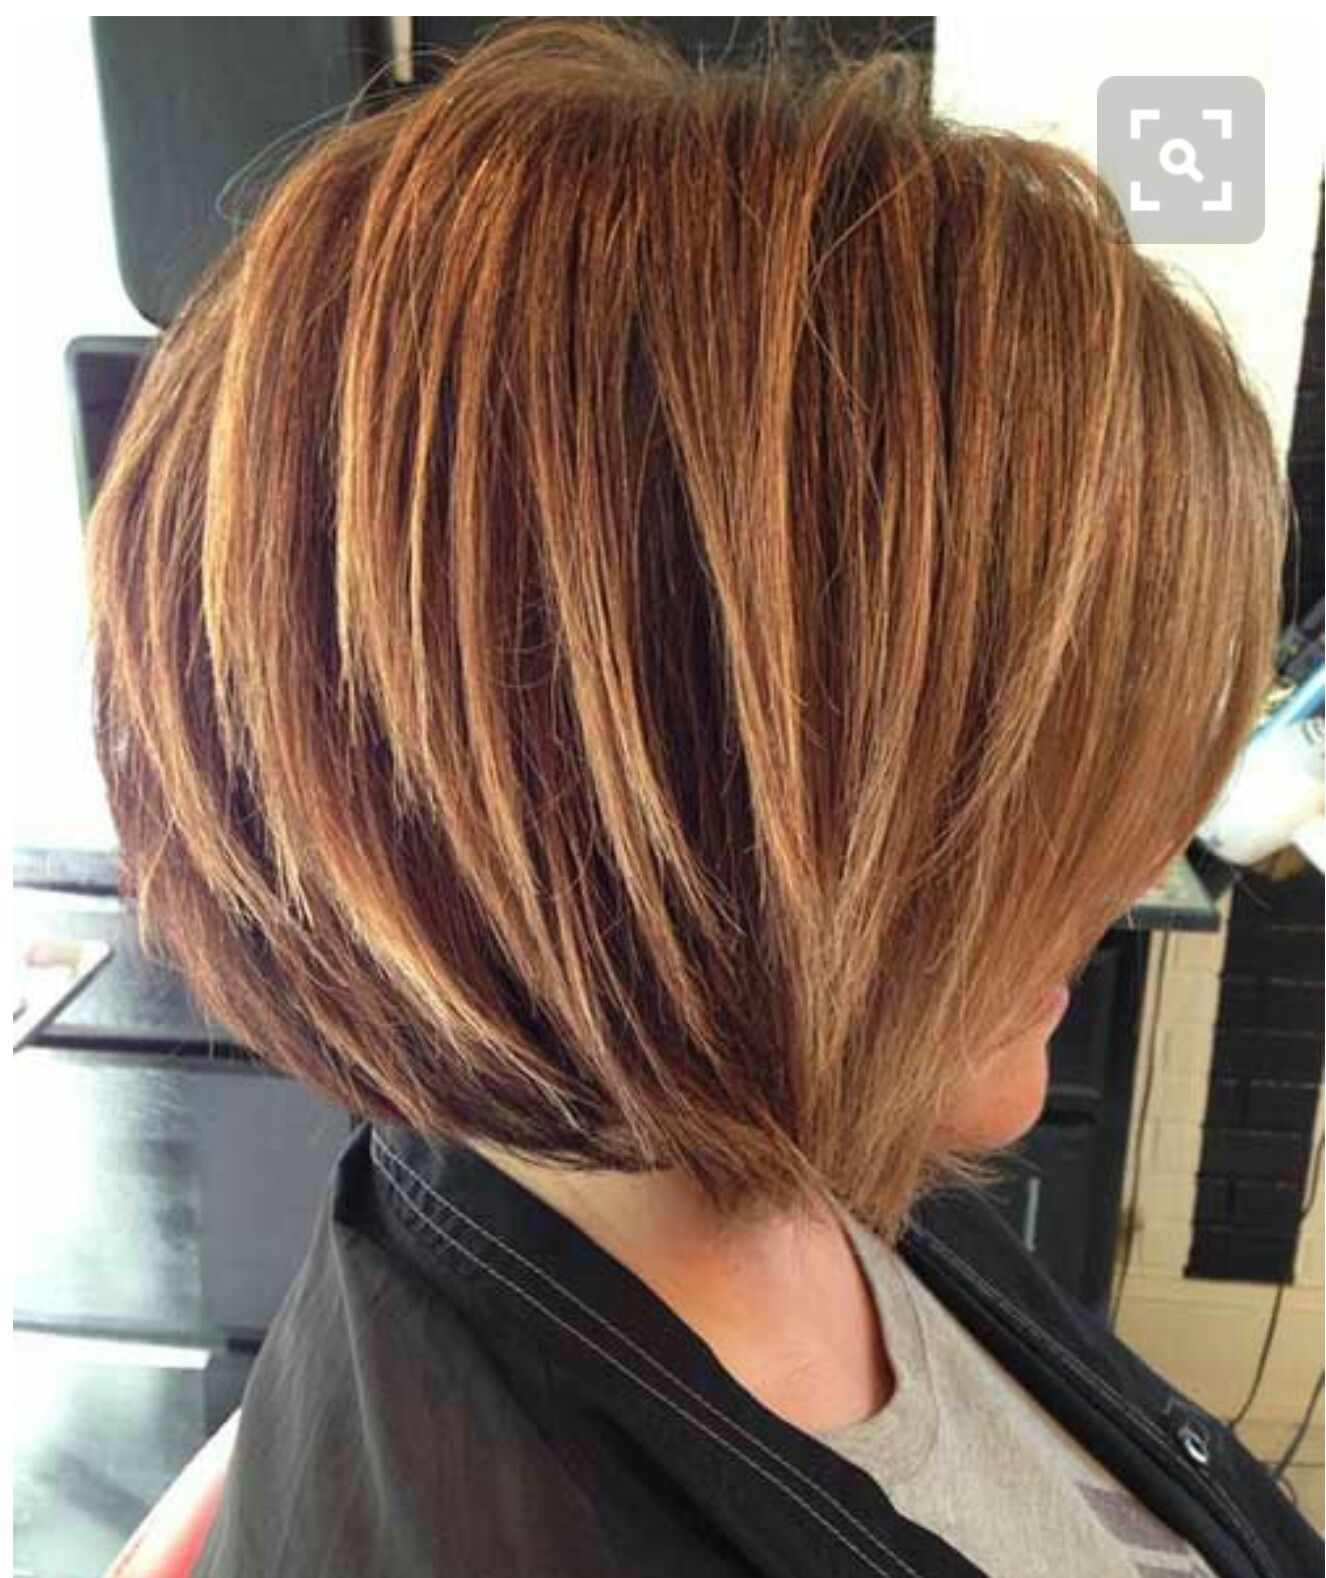 Hairstyles Haircuts Amazing 99 Best Hair Styles For Over 40 Images On Pinterest  Hair Cut